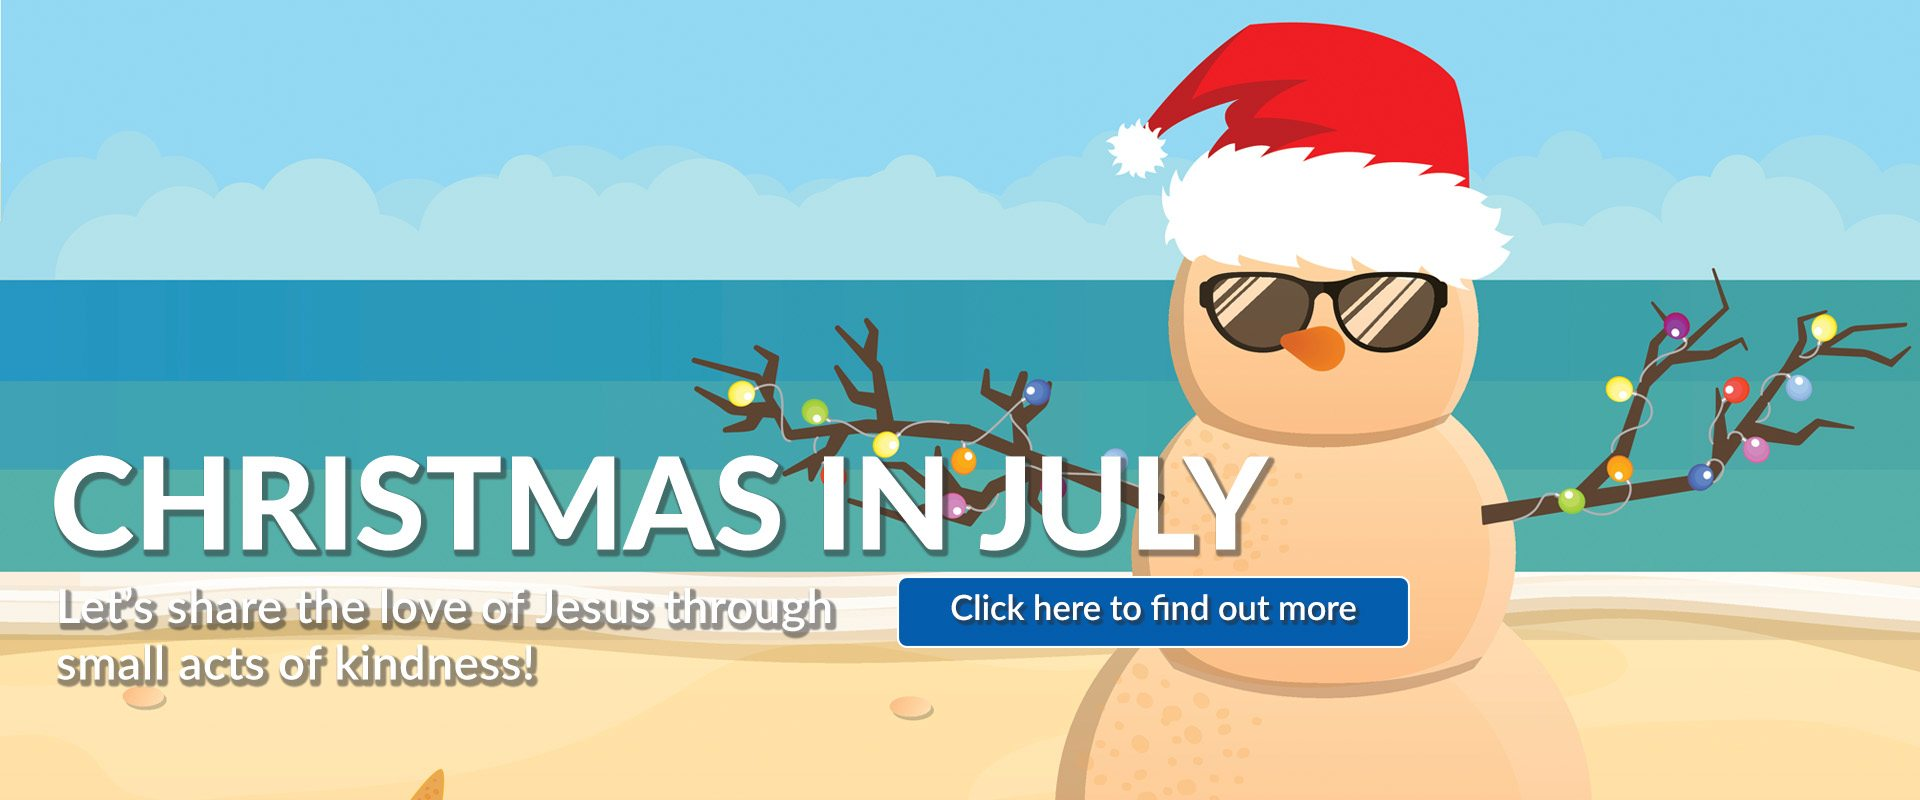 20170700 Christmas in July Web Graphic – KGLY